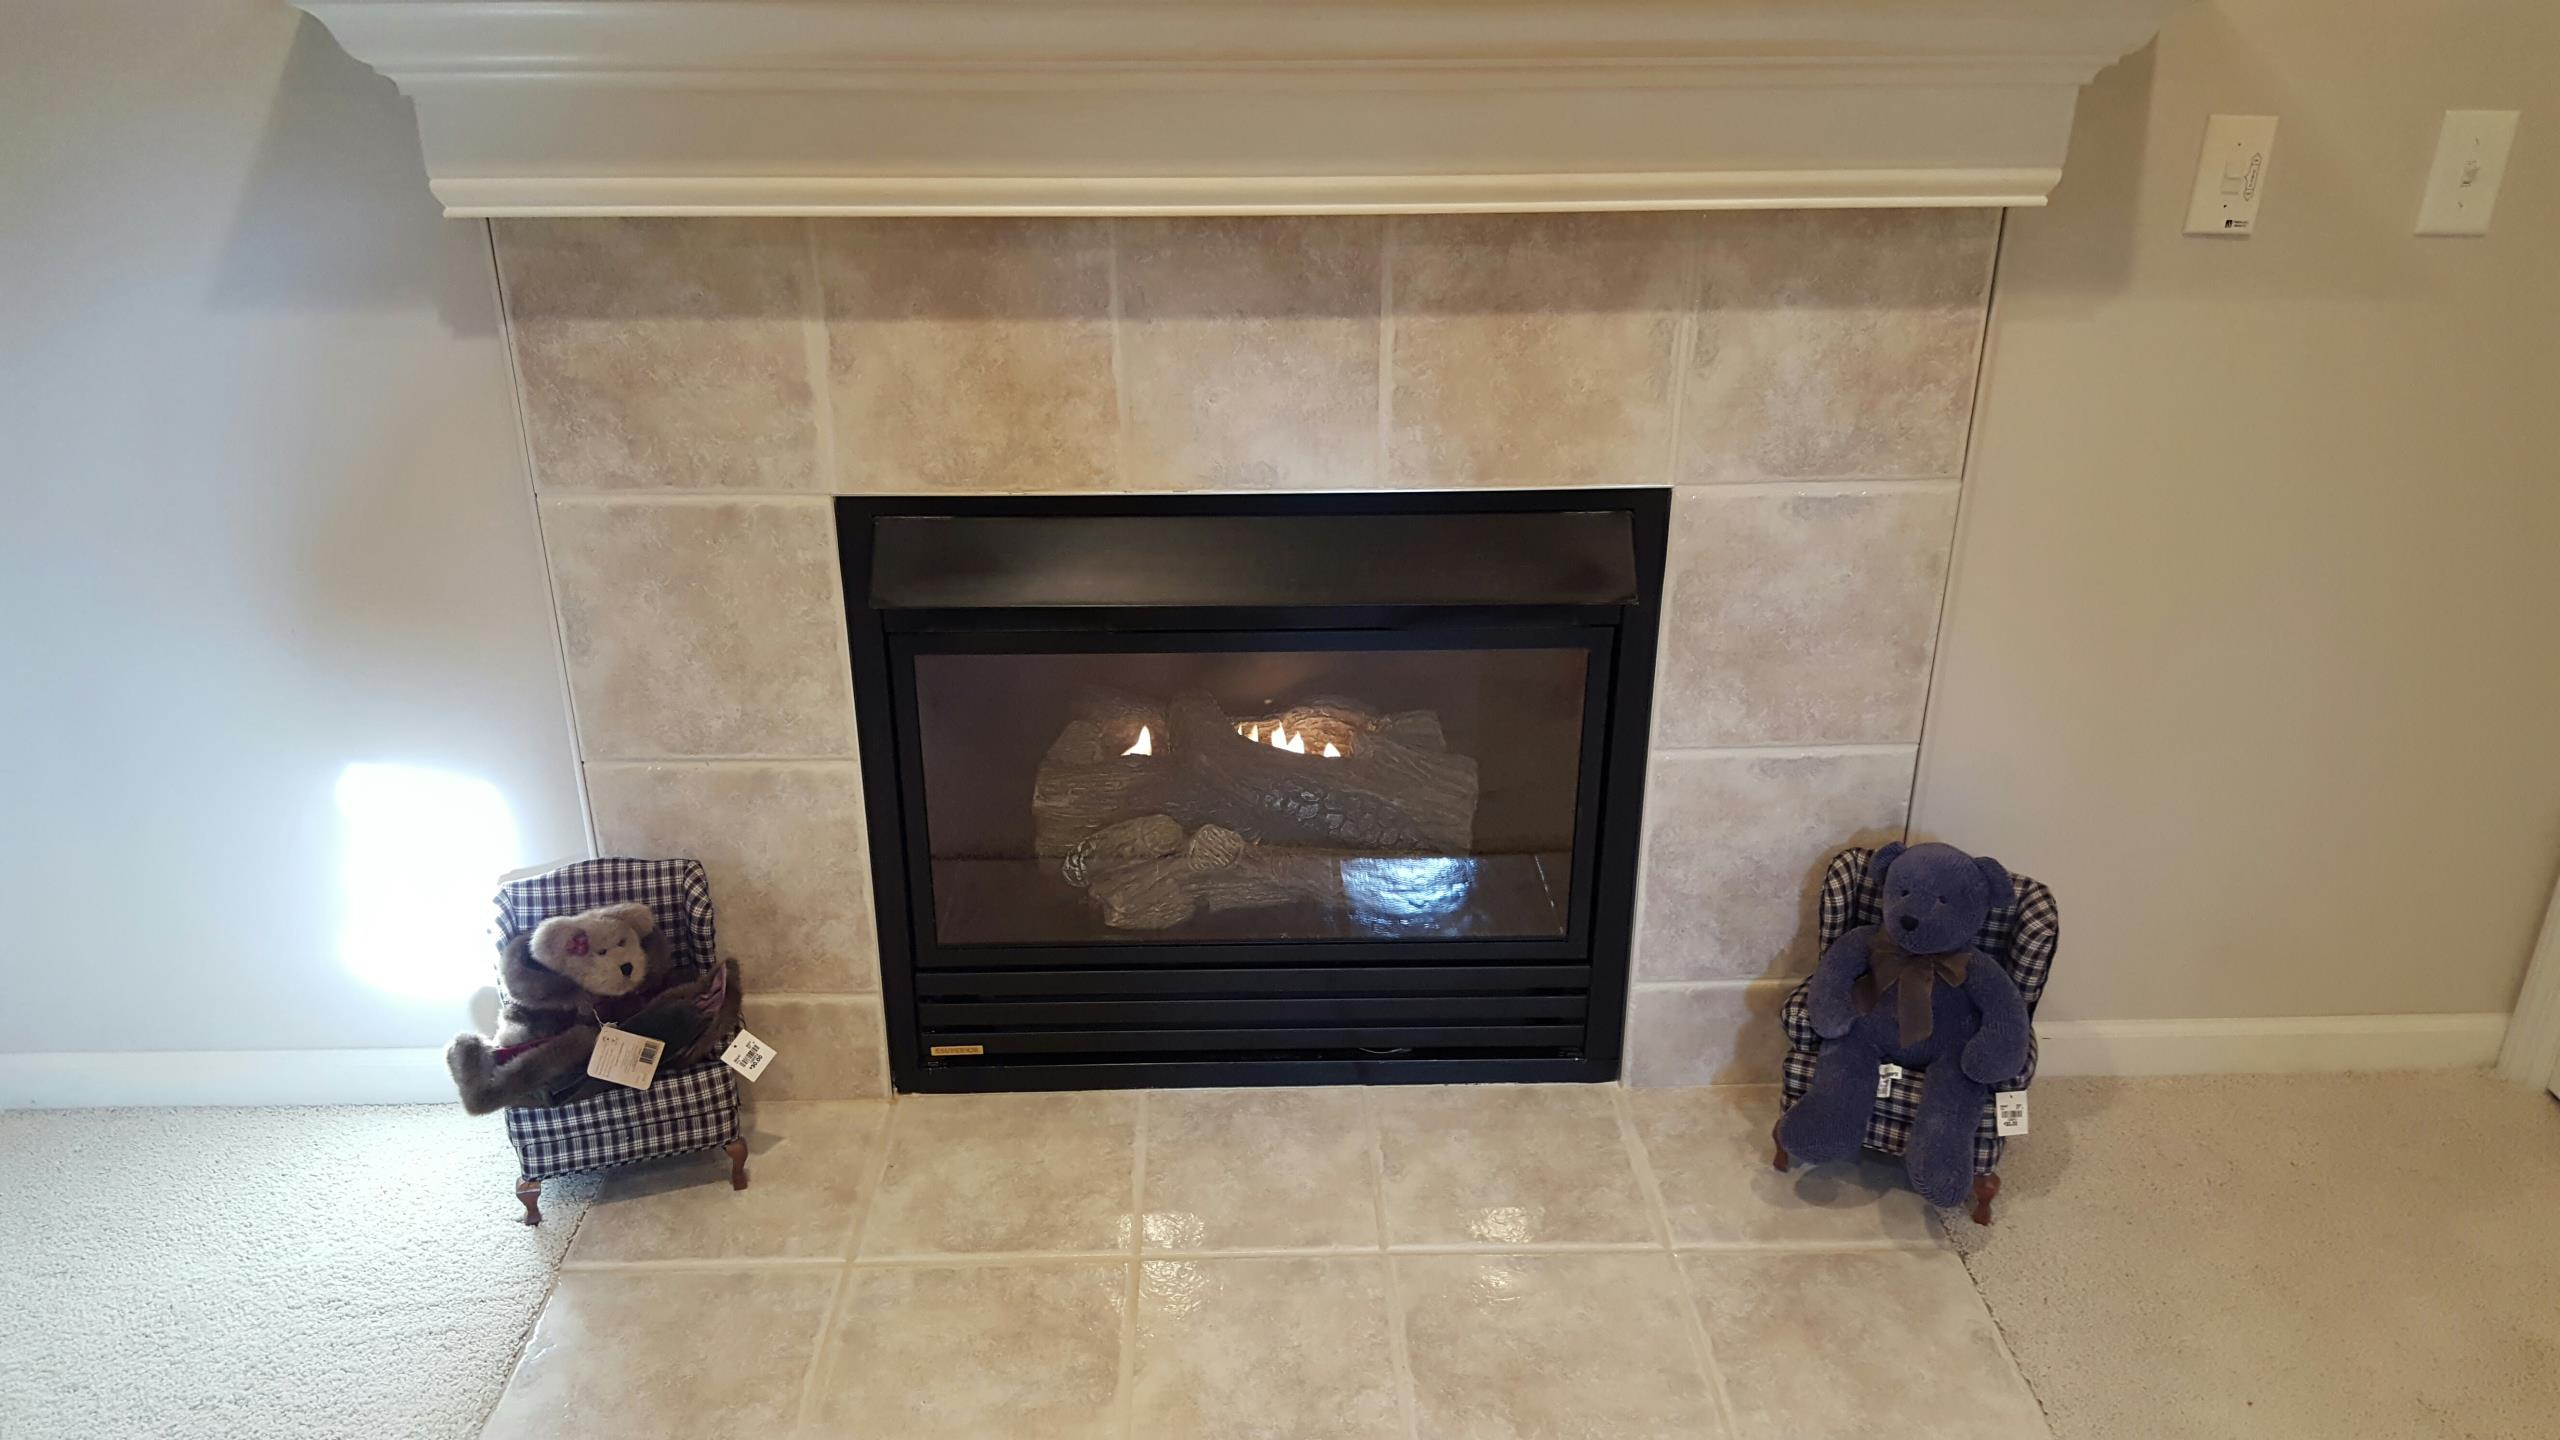 Miamisburg, OH - Gas fireplace